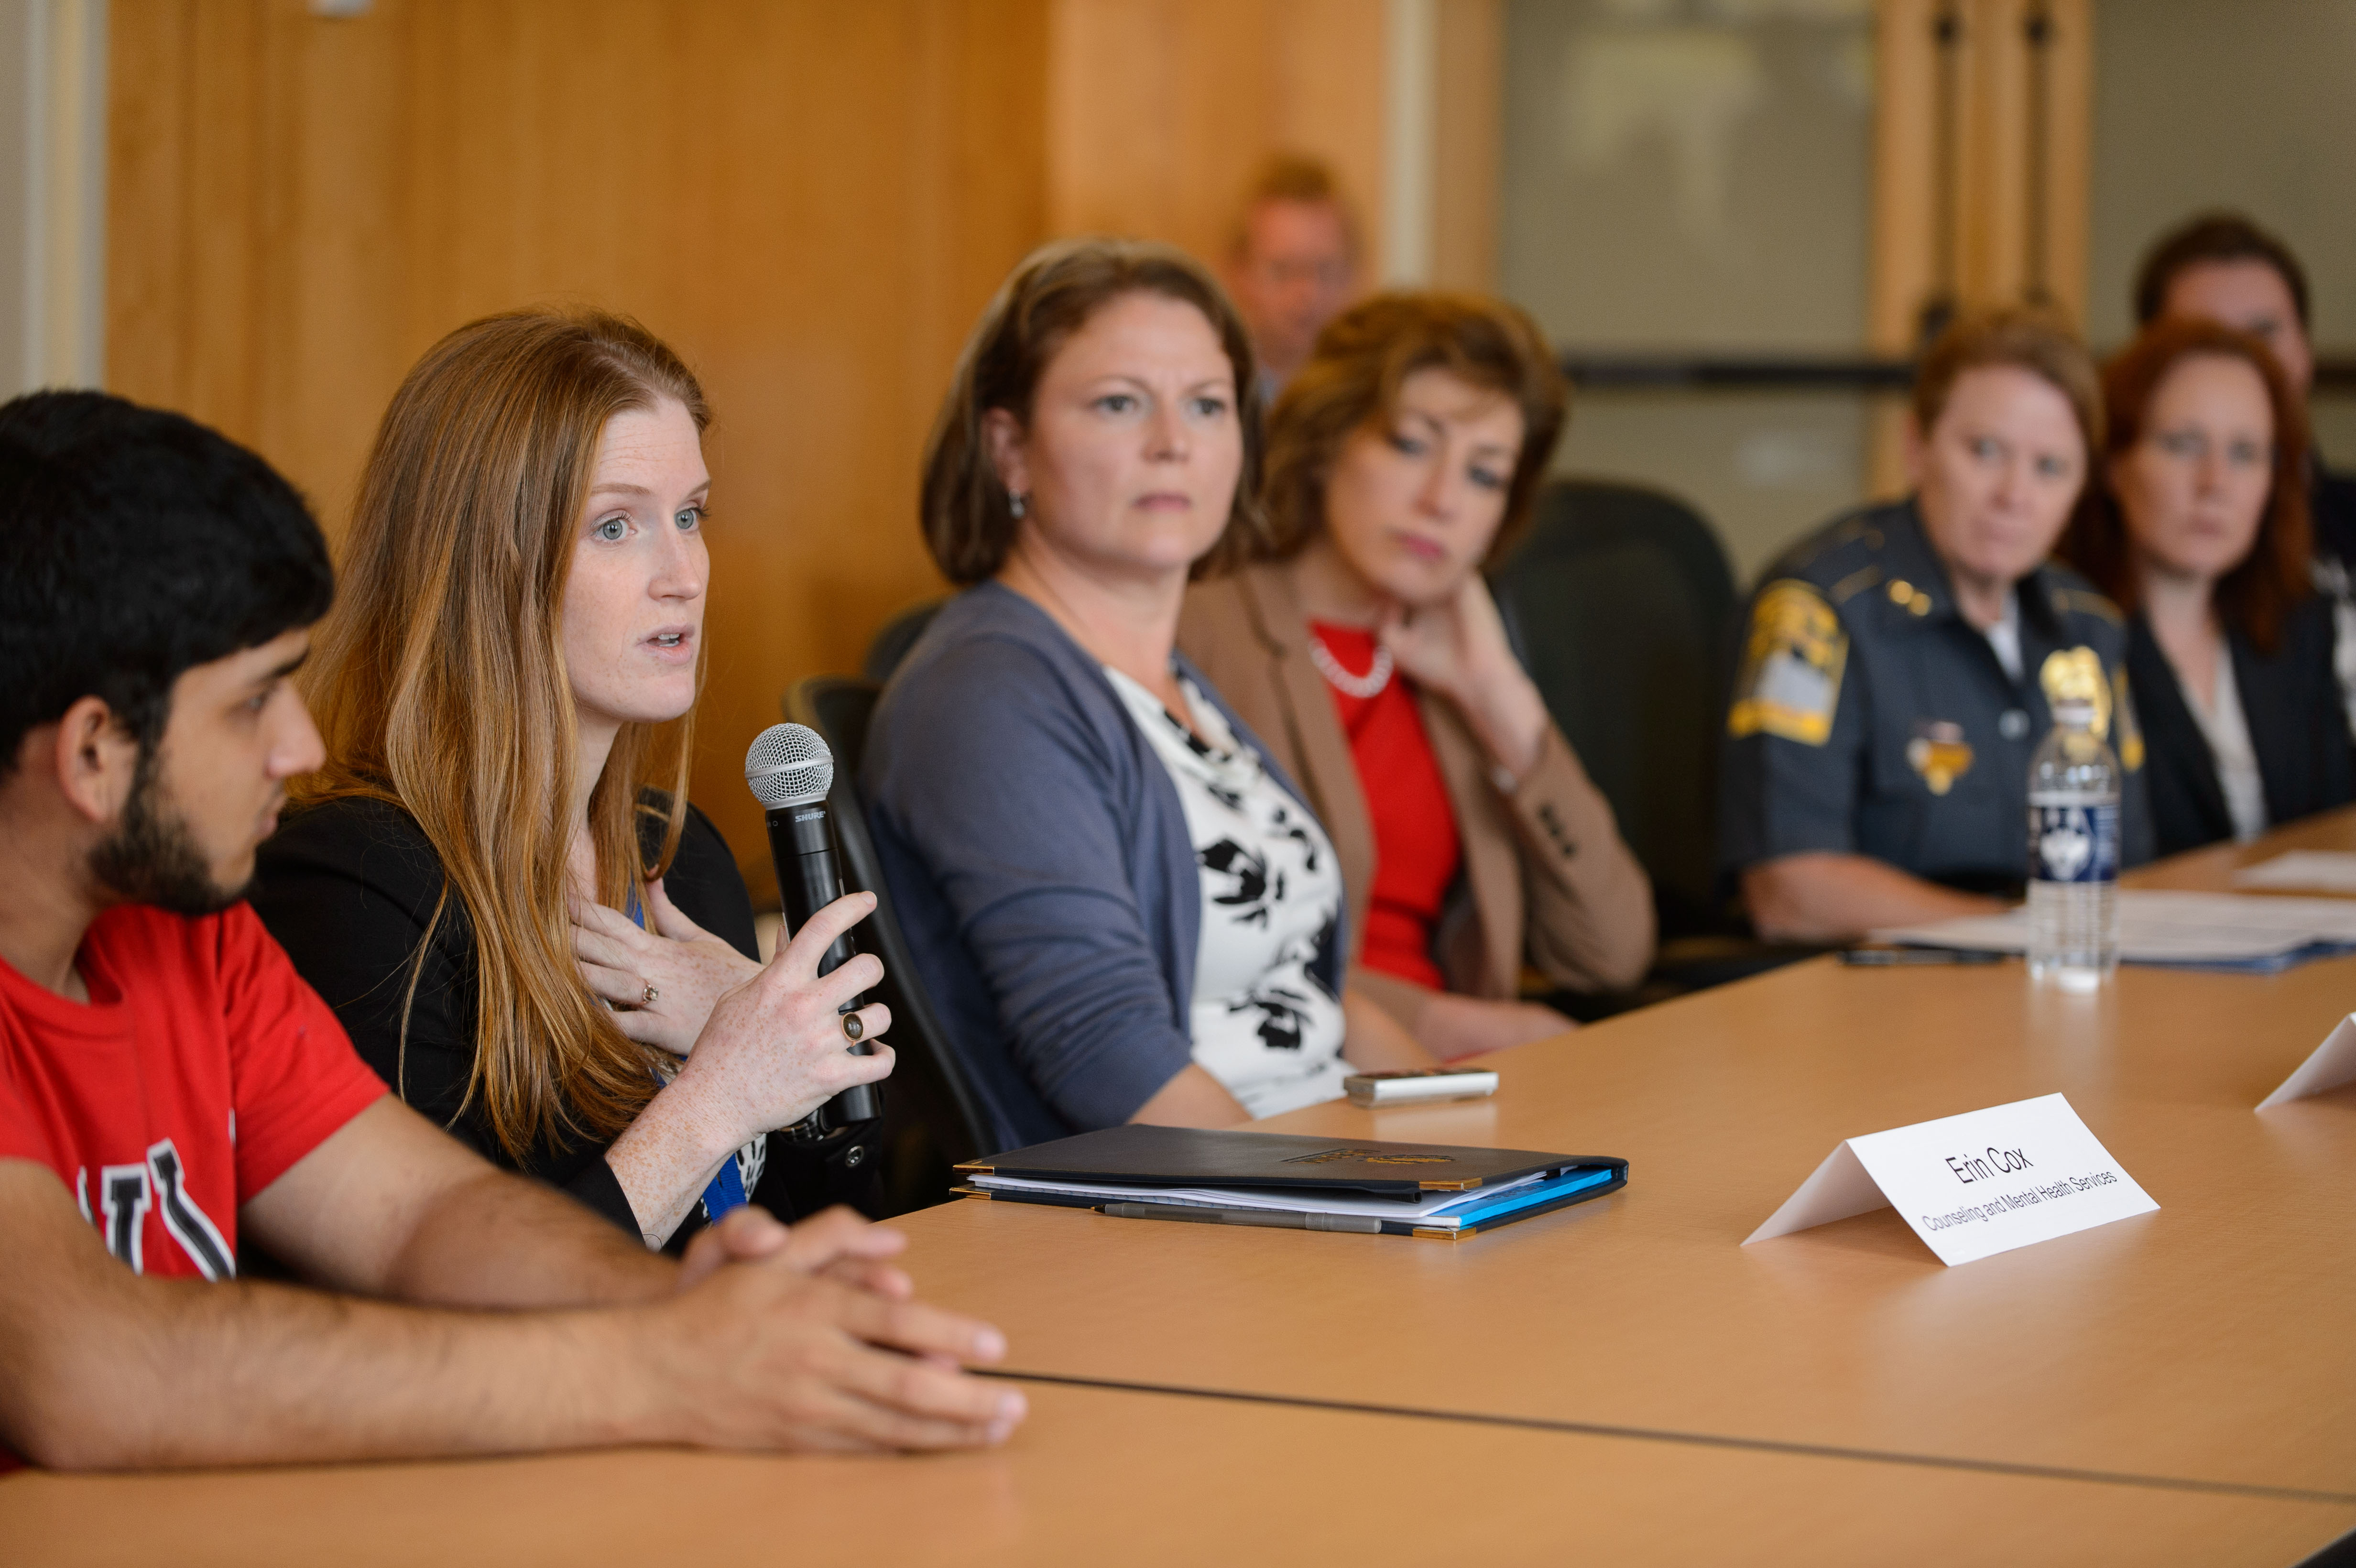 UConn Leaders, Students Discuss Campus Safety Preparations - UConn Today